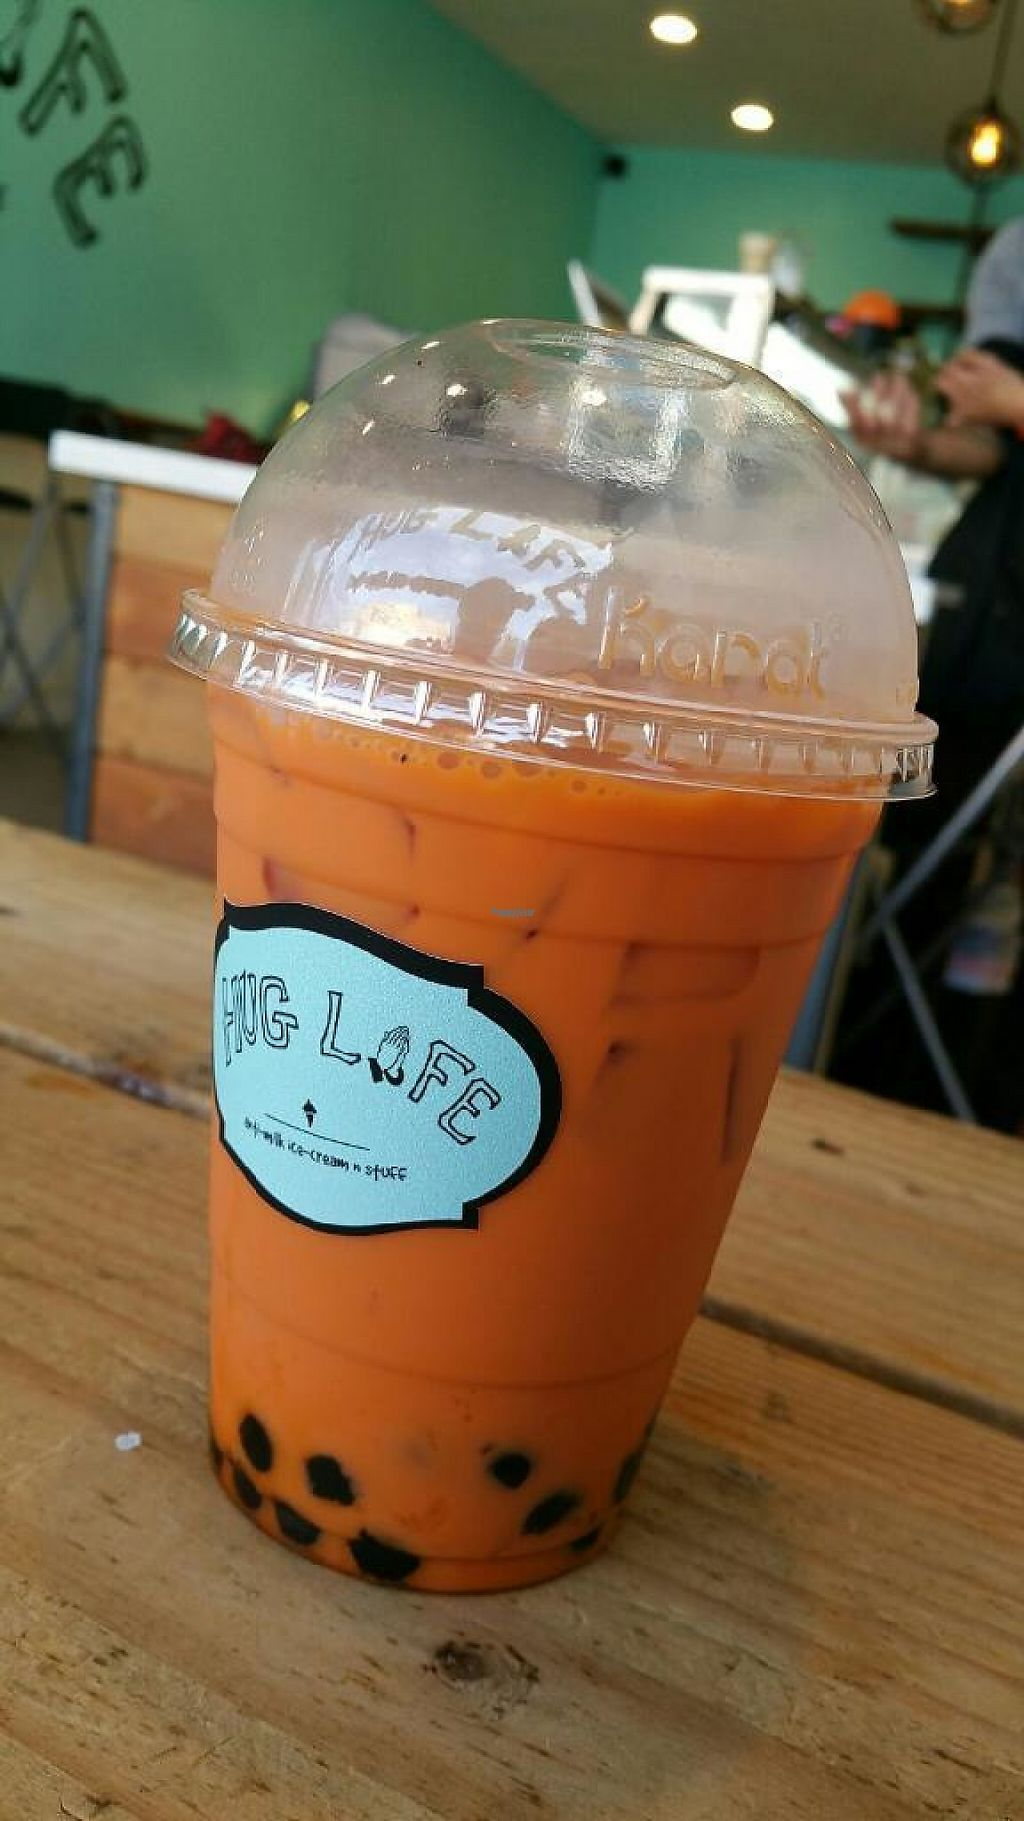 """Photo of Hug Life  by <a href=""""/members/profile/Labylala"""">Labylala</a> <br/>First customer to get the Boba in Thai Tea drink! Yum! <br/> November 8, 2016  - <a href='/contact/abuse/image/82555/187510'>Report</a>"""